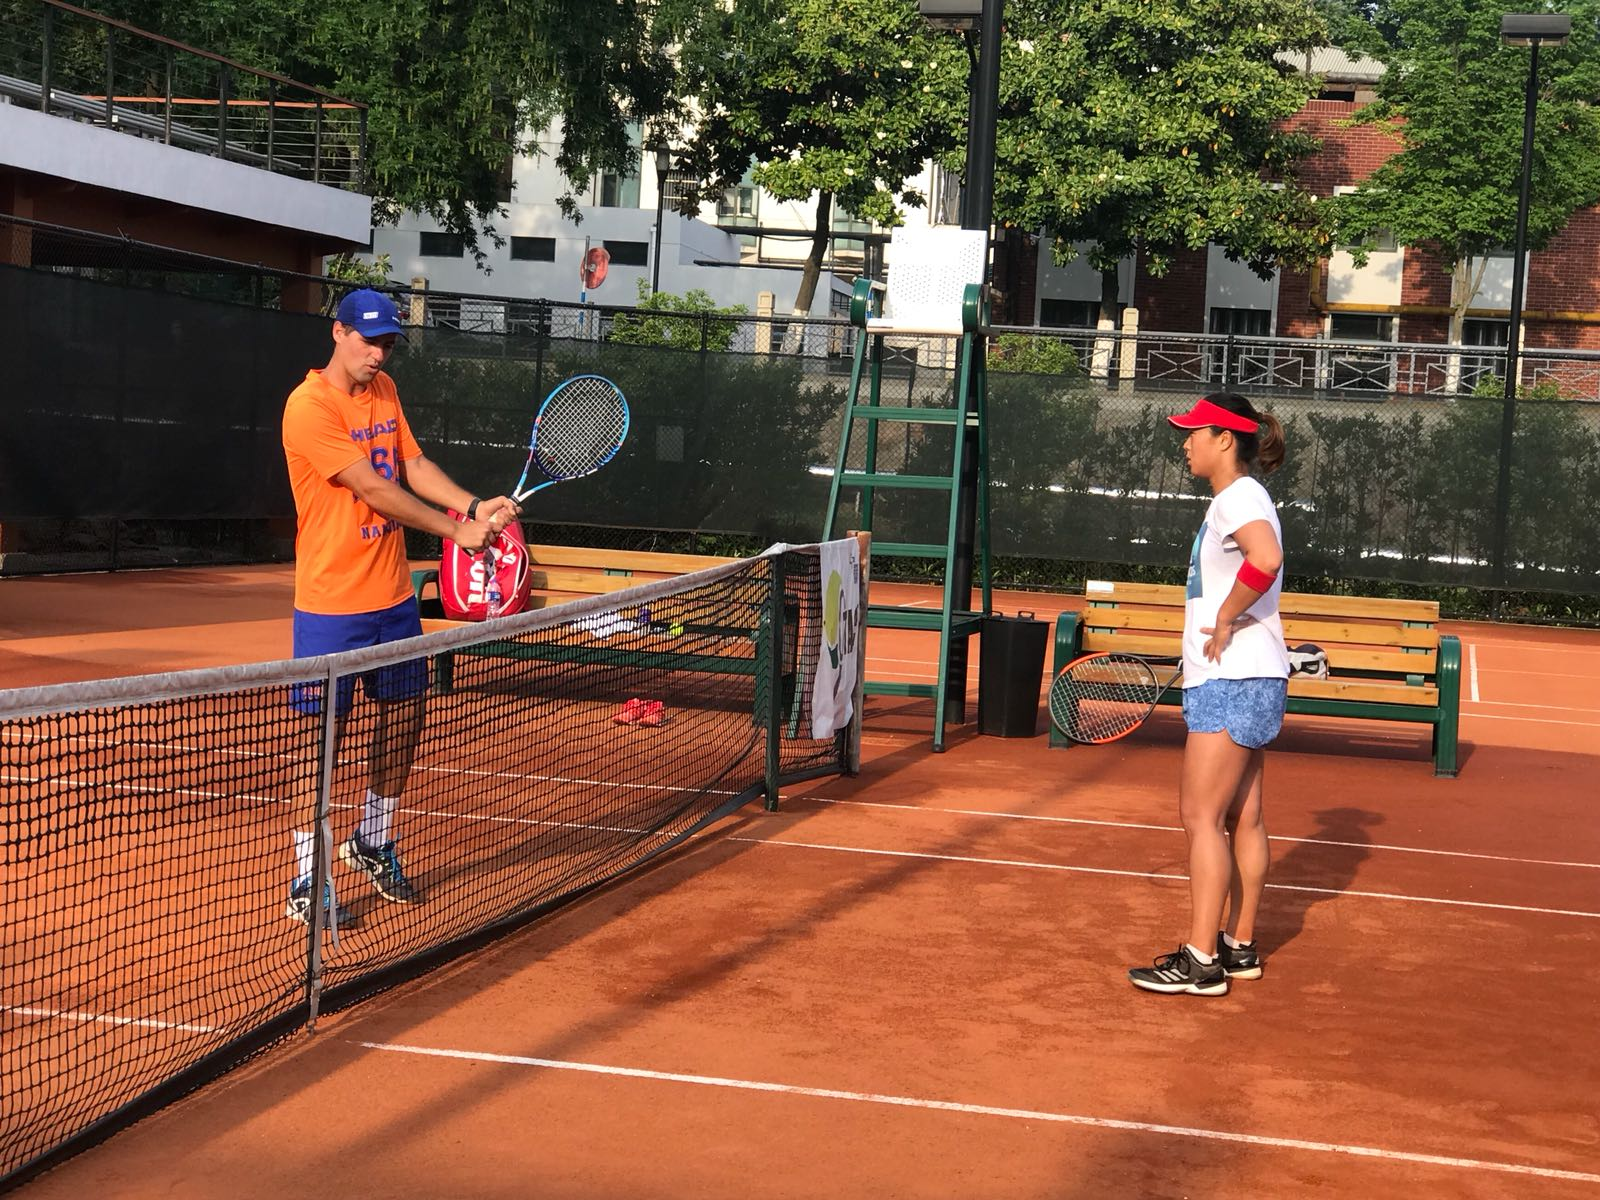 Hector Ruiz on court with student